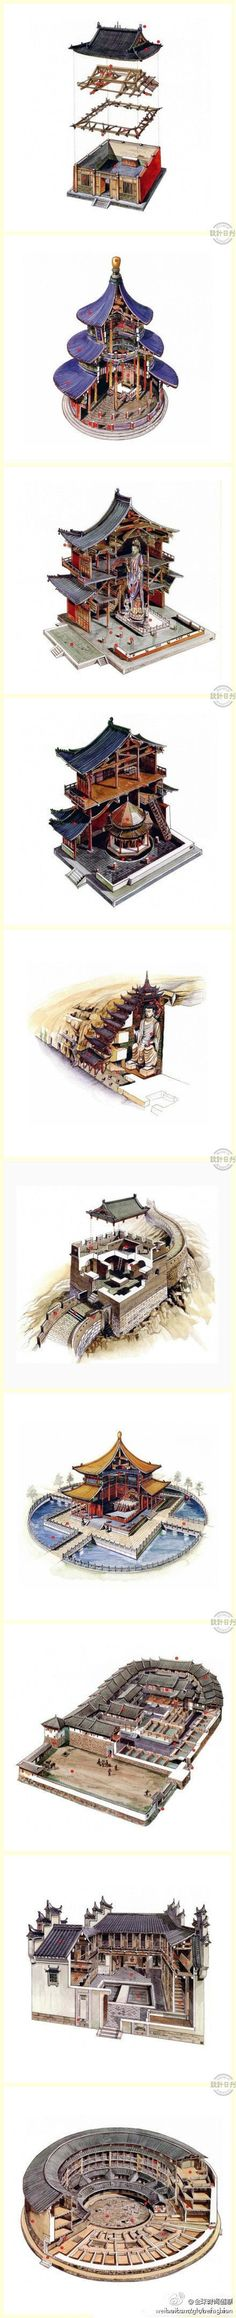 Cutaways of 10 styles of Chinese buildings. http://www.visiontimes.com/2015/04/05/see-the-unique-anatomy-of-these-10-classical-chinese-buildings.html